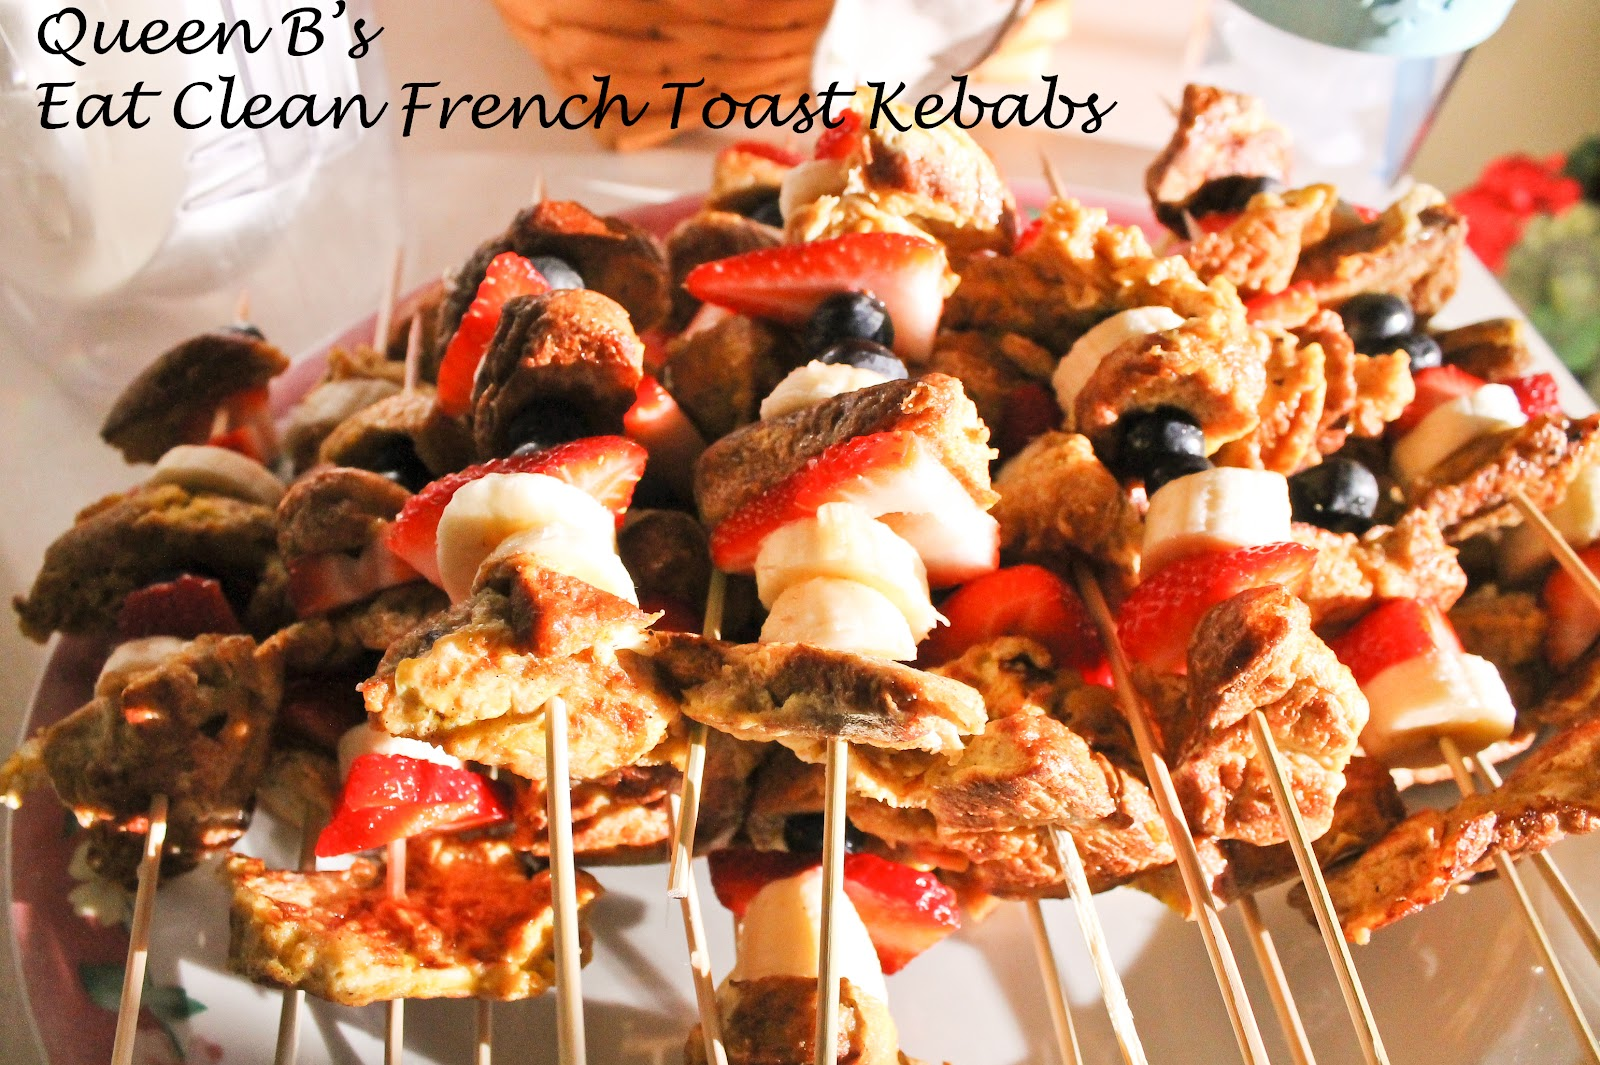 The Queen B: Eat Clean French Toast and Fruit Kebabs